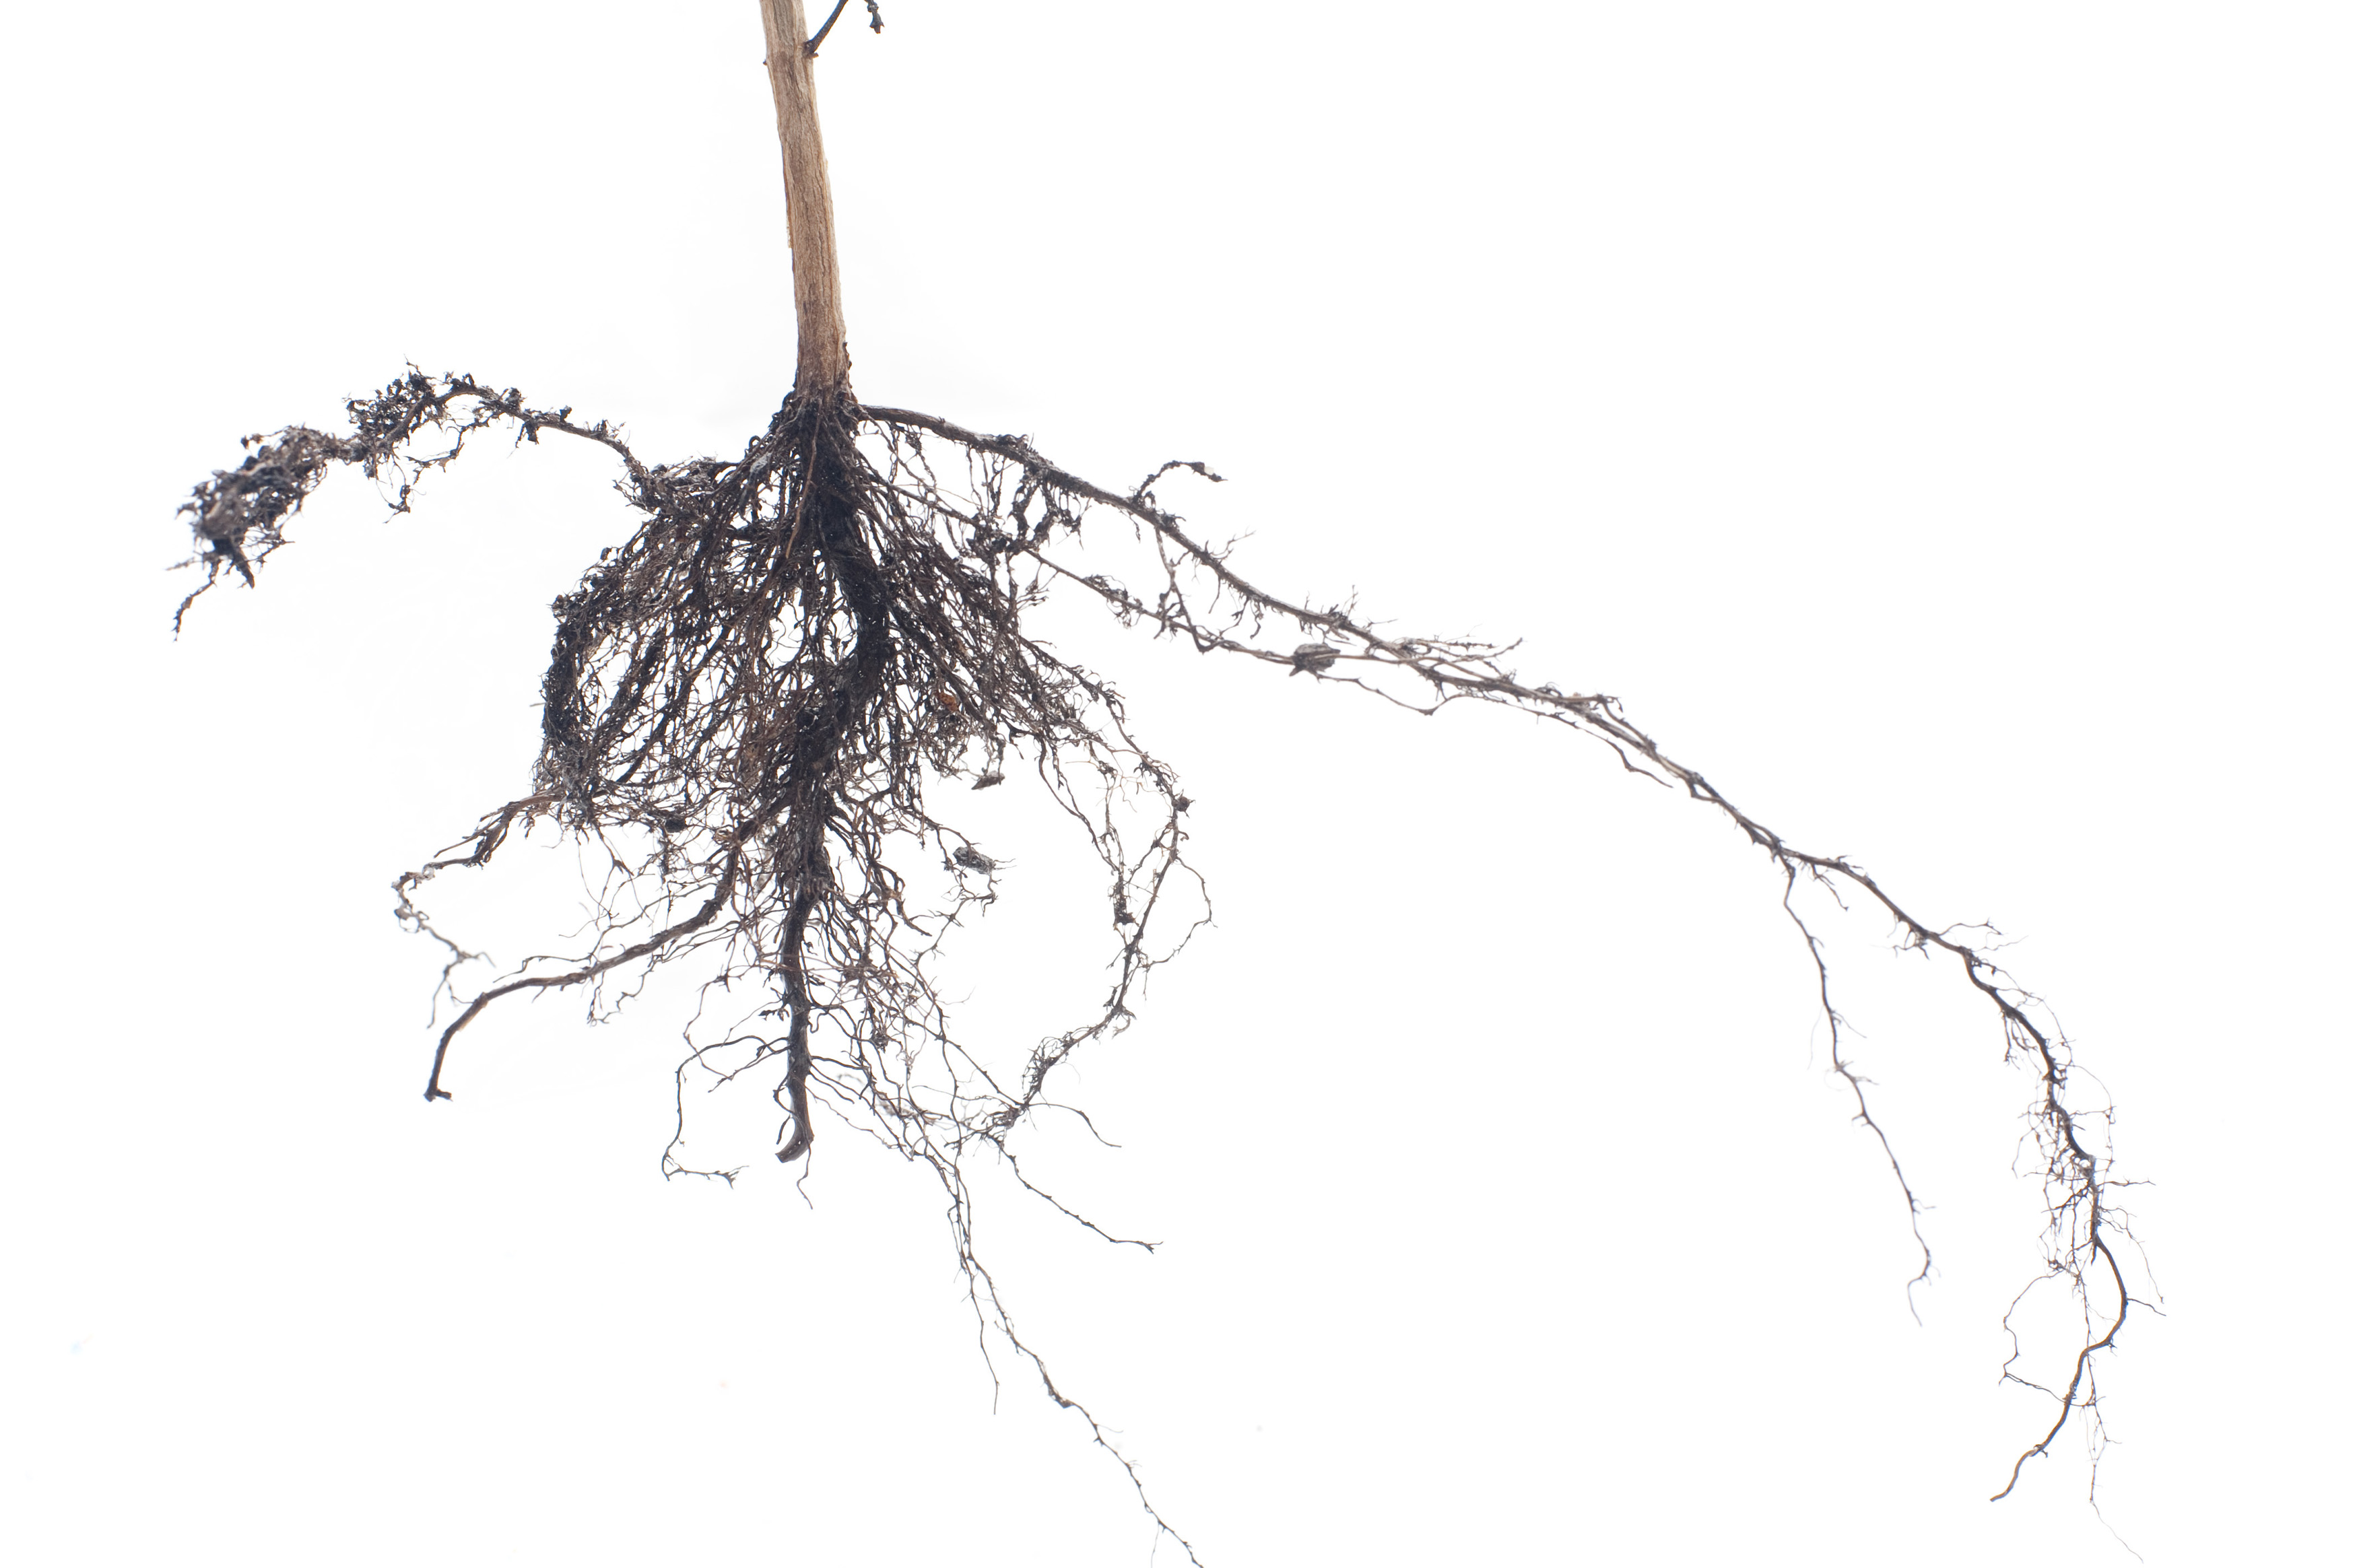 Free Stock Image Of Fibrous Root System On A Plant